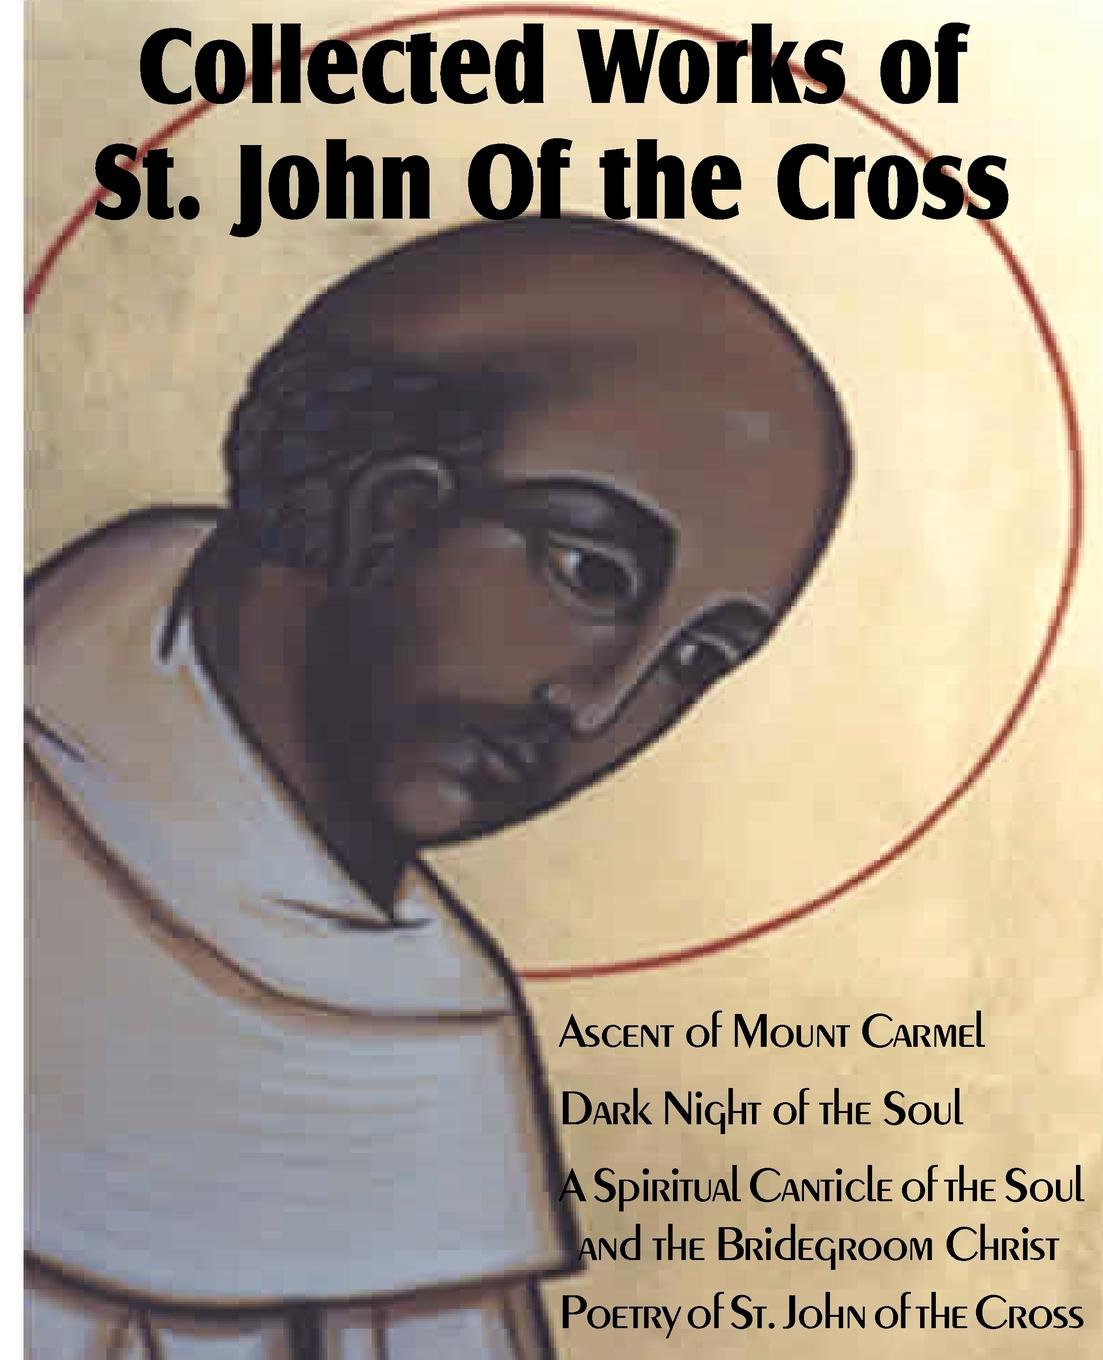 St John of the Cross Collected Works of St John of the Cross Ascent of Mount Carmel Dark Night of the Soul a Spiritual Canticle of the Soul and the Bridegroom Christ